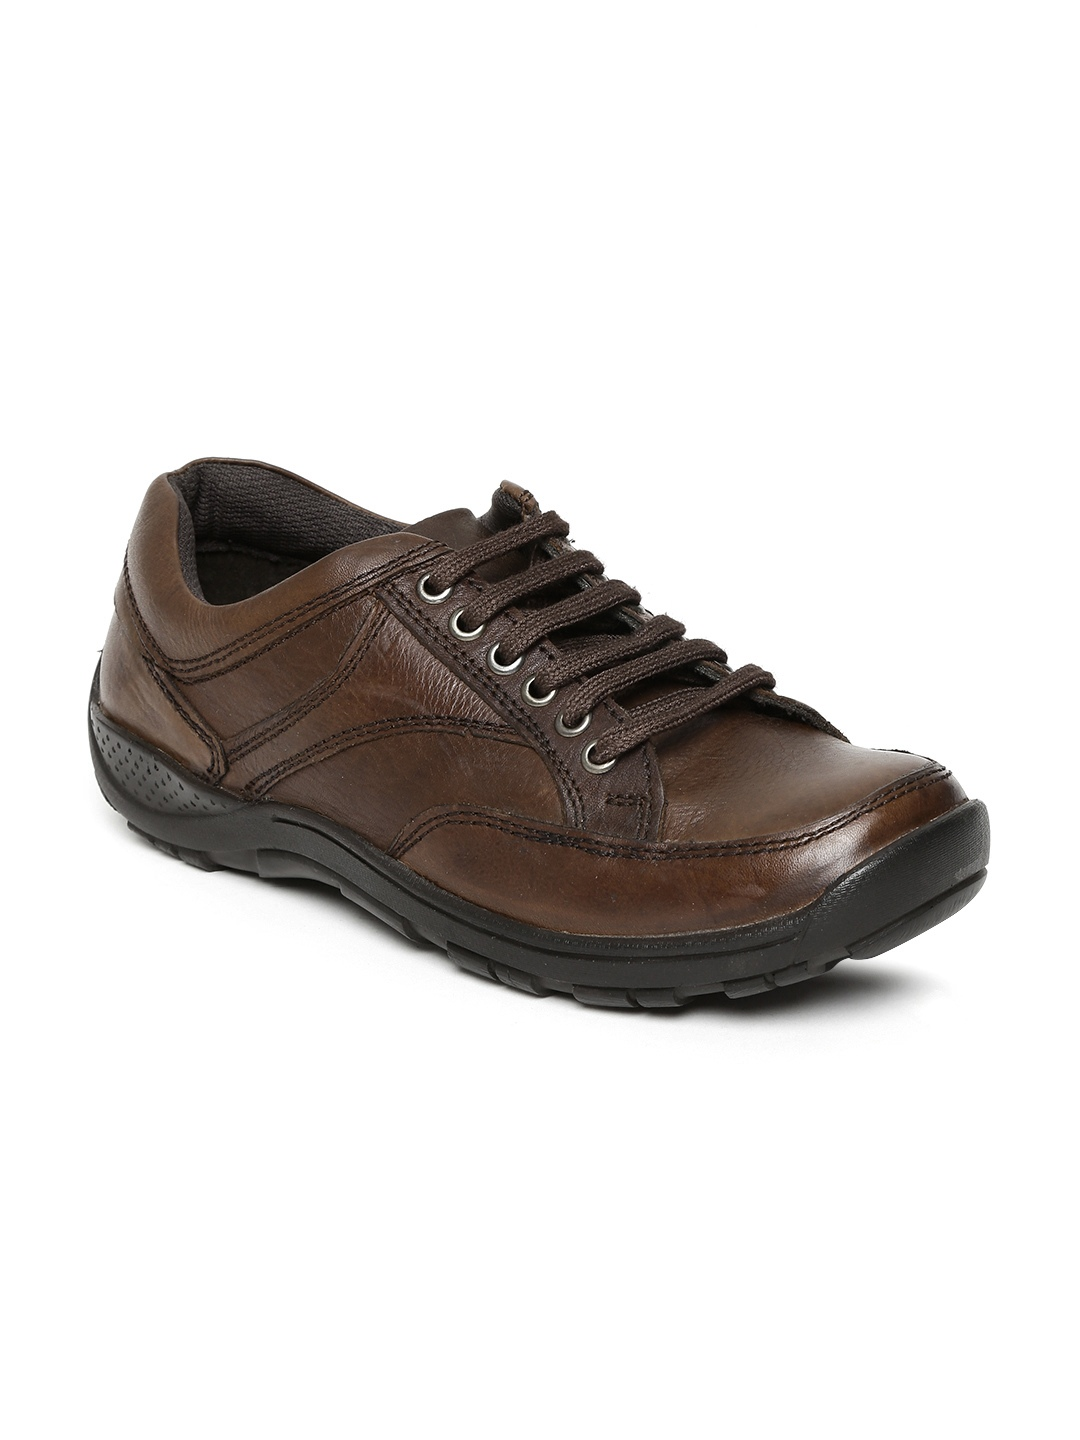 myntra alberto torresi brown leather casual shoes